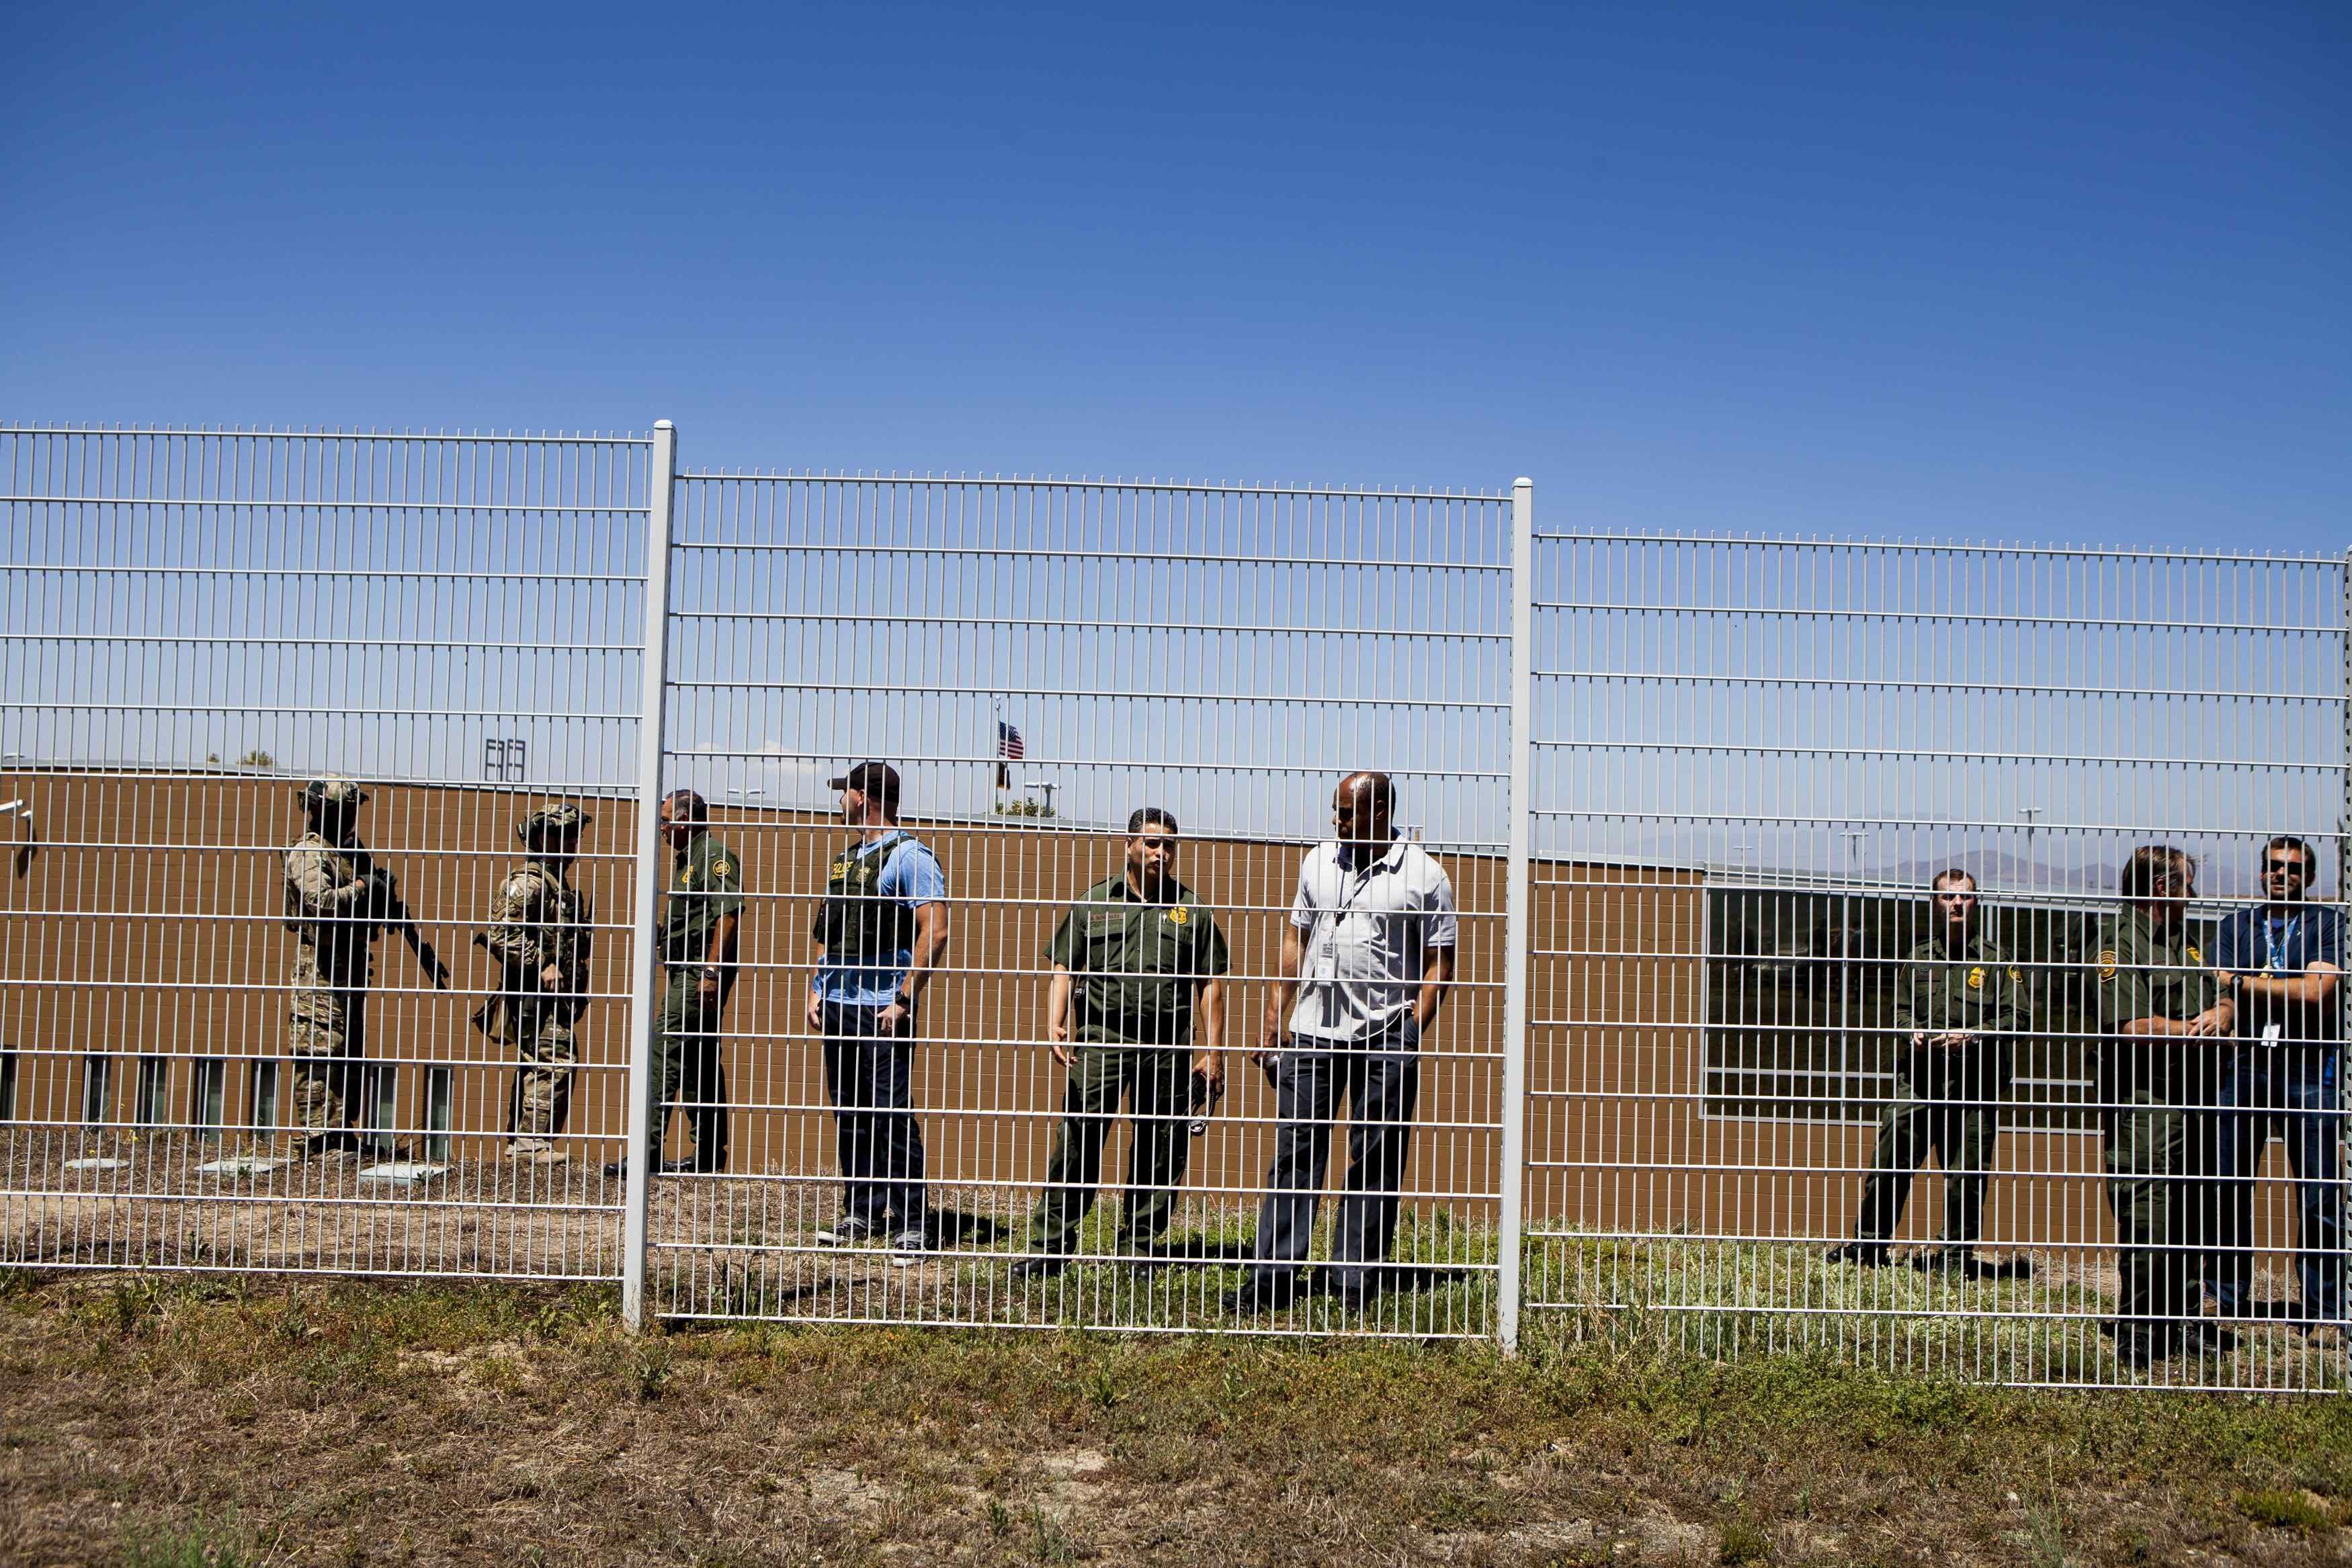 Image: Border Patrol agents watch as demonstrators picket against the possible arrivals of undocumented migrants who may be processed at the Murrieta Border Patrol Station in California